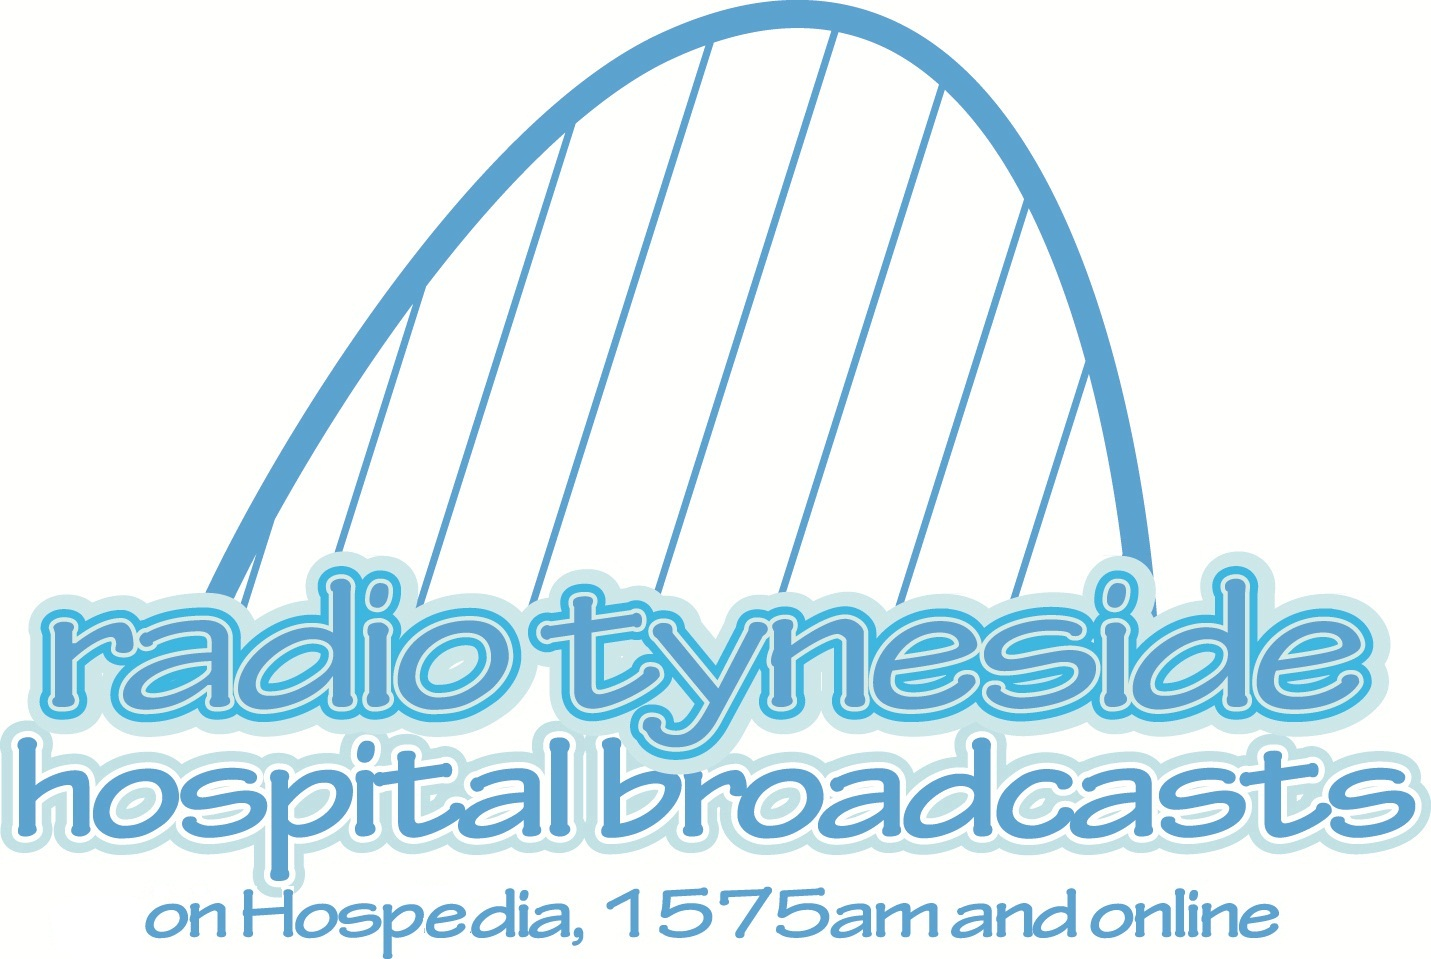 National Hospital Radio Awards 2017 - Radio Tyneside